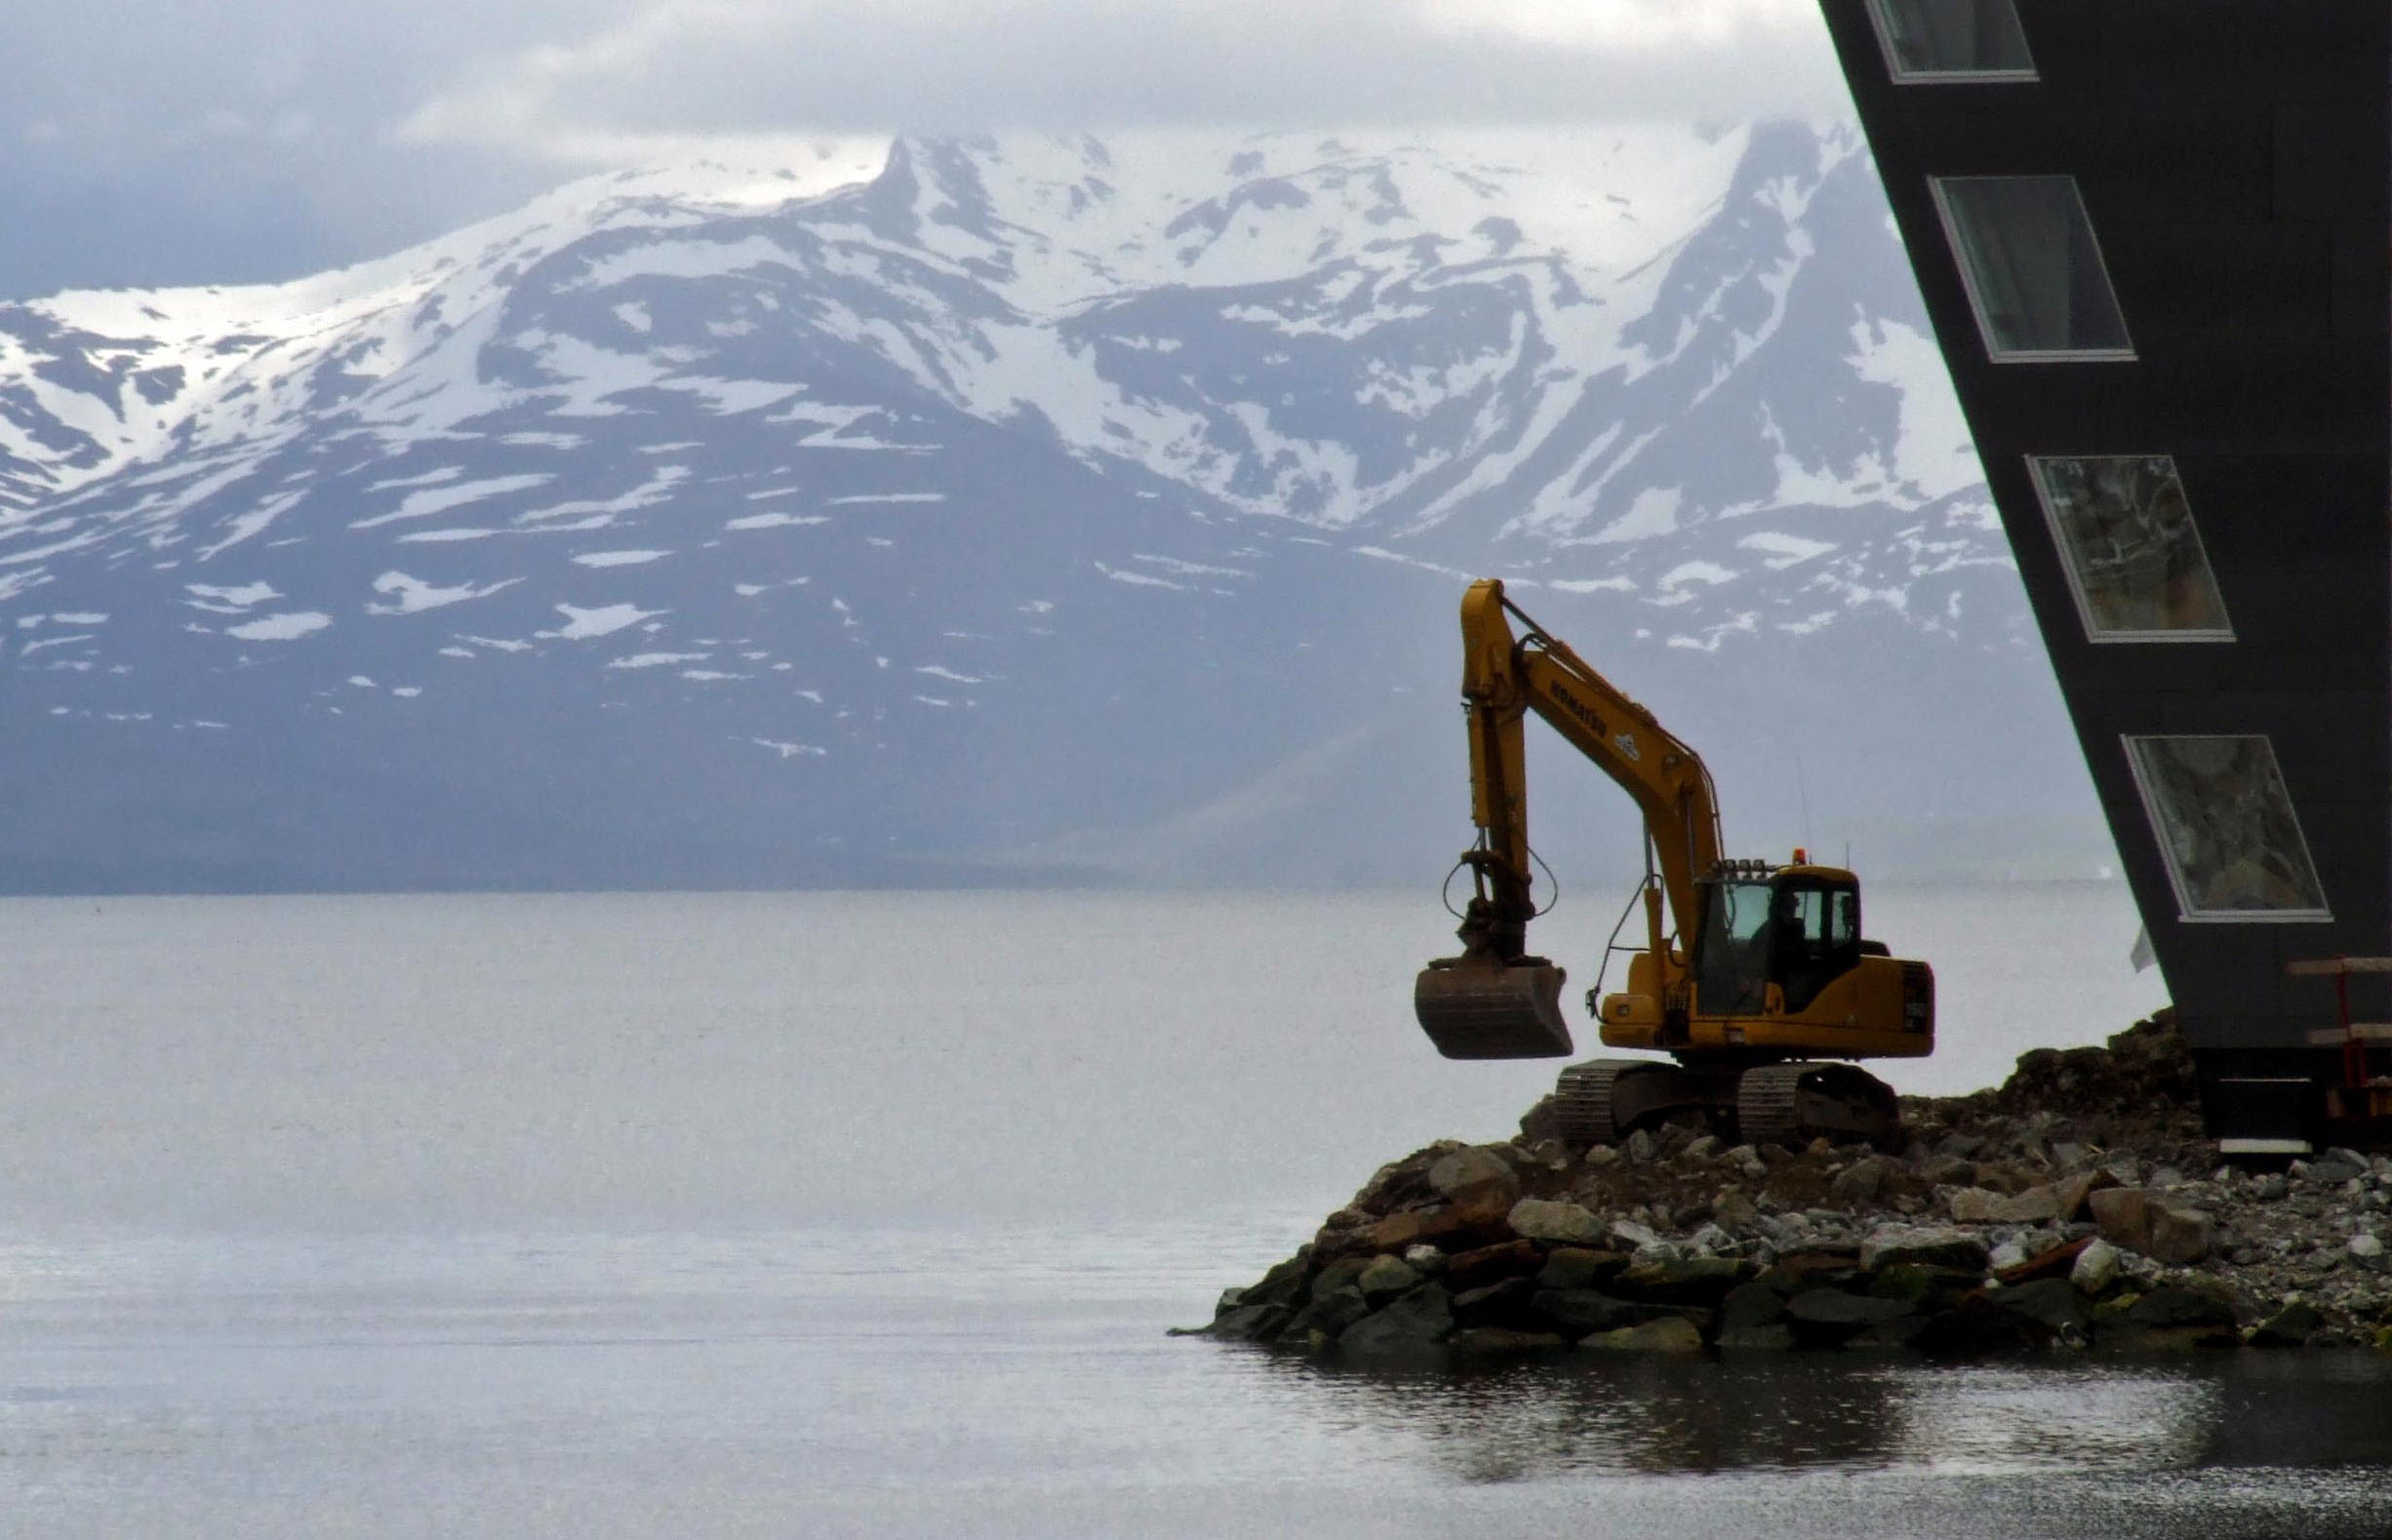 Technology and cooperation key for sustainable development in the Arctic